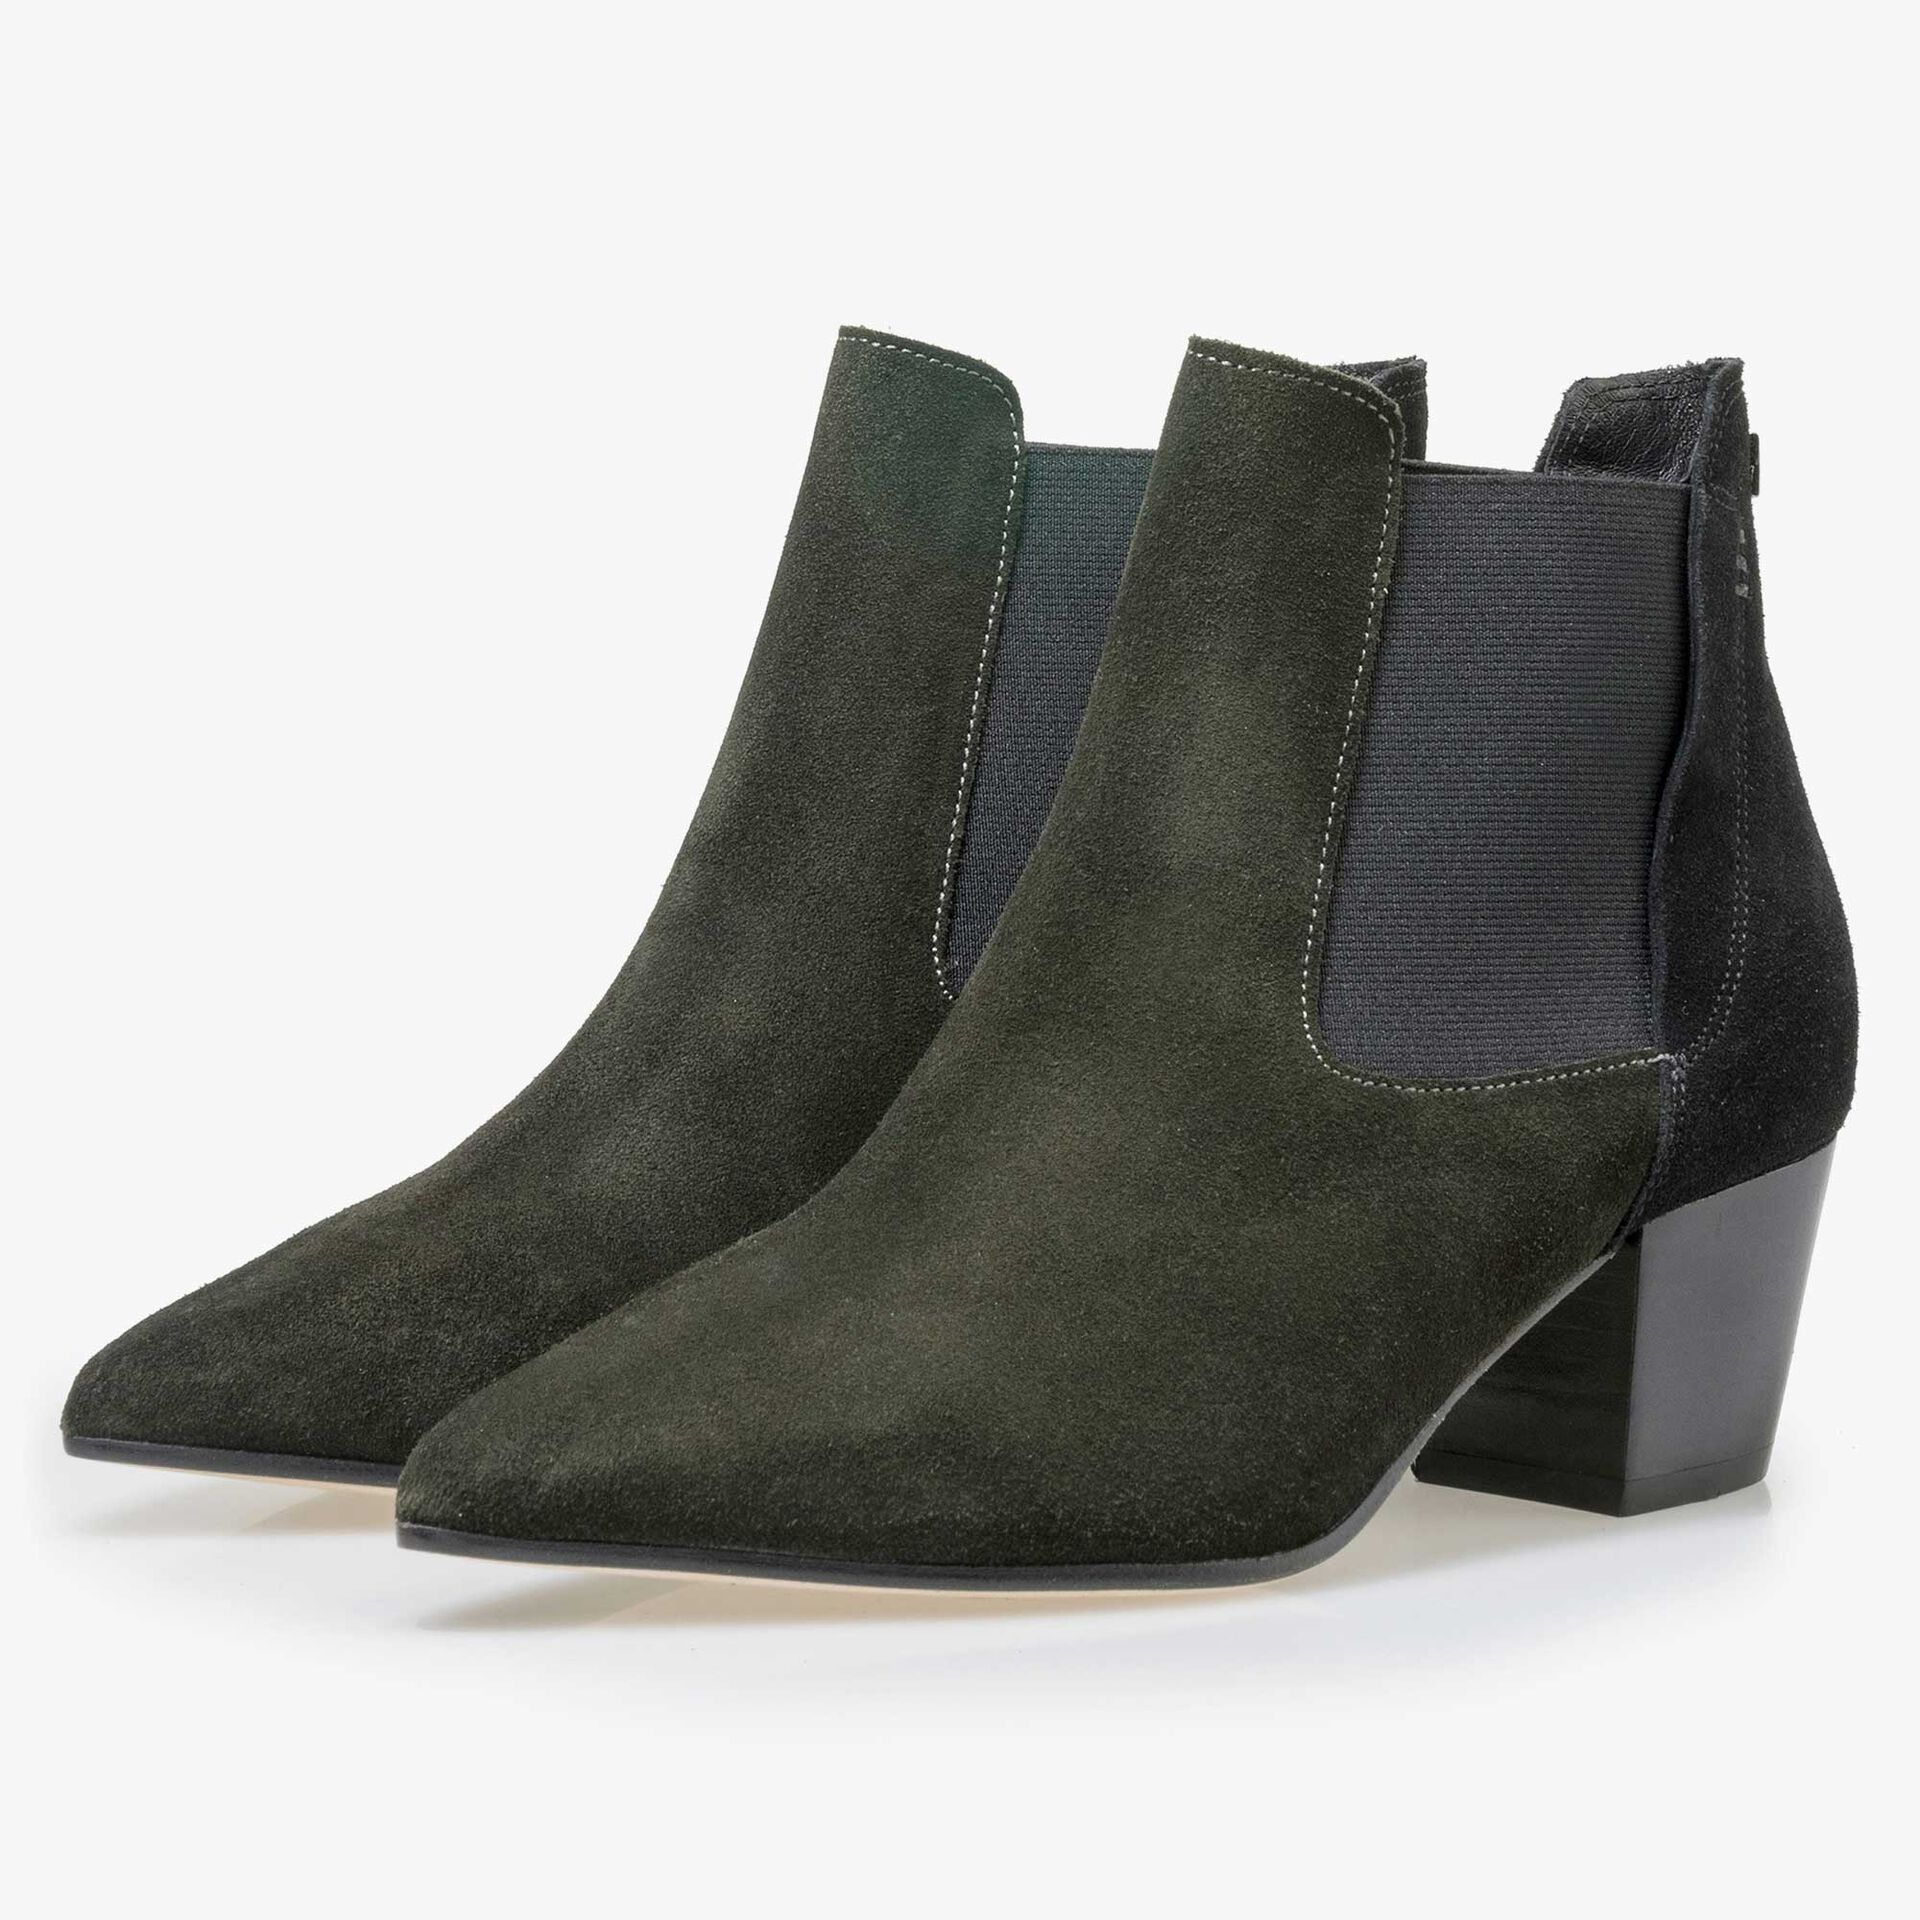 Floris van Bommel olive green suede leather ankle boot